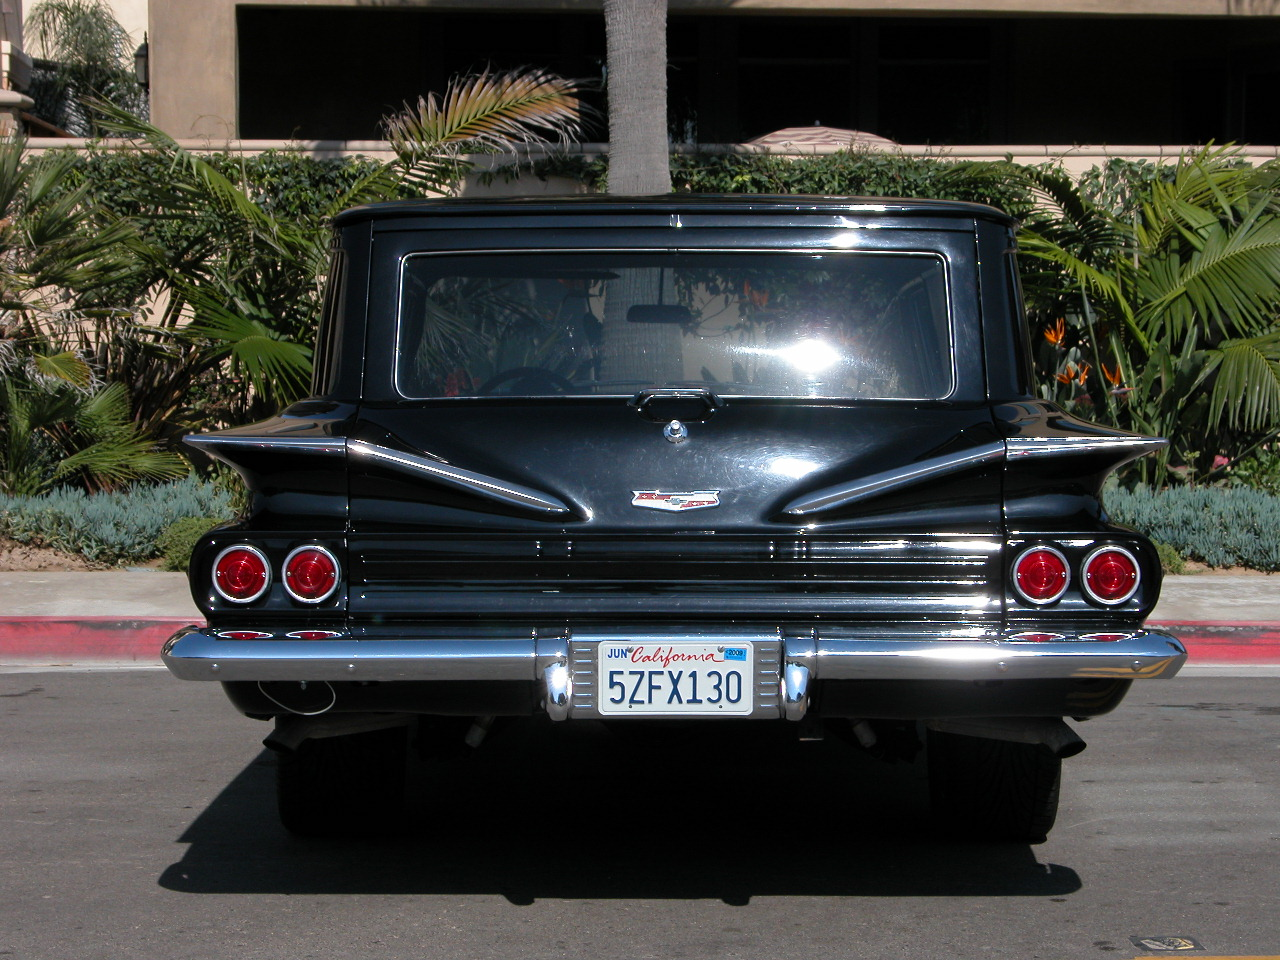 1960 Chevrolet Biscayne Sedan Delivery